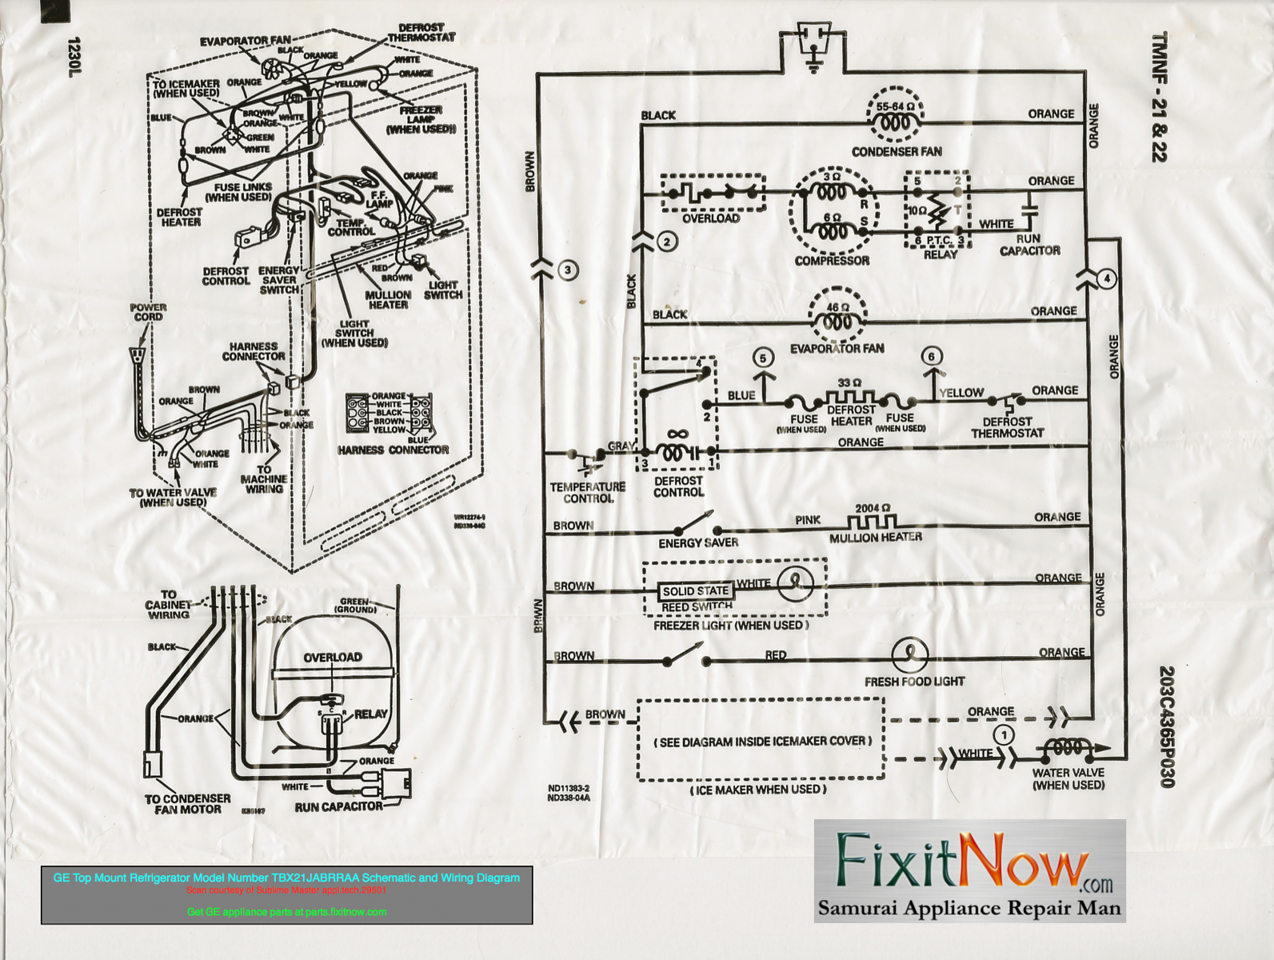 4904374061_e8eb3df6c6_o X2 wiring diagrams and schematics appliantology temperature control wiring diagram at aneh.co